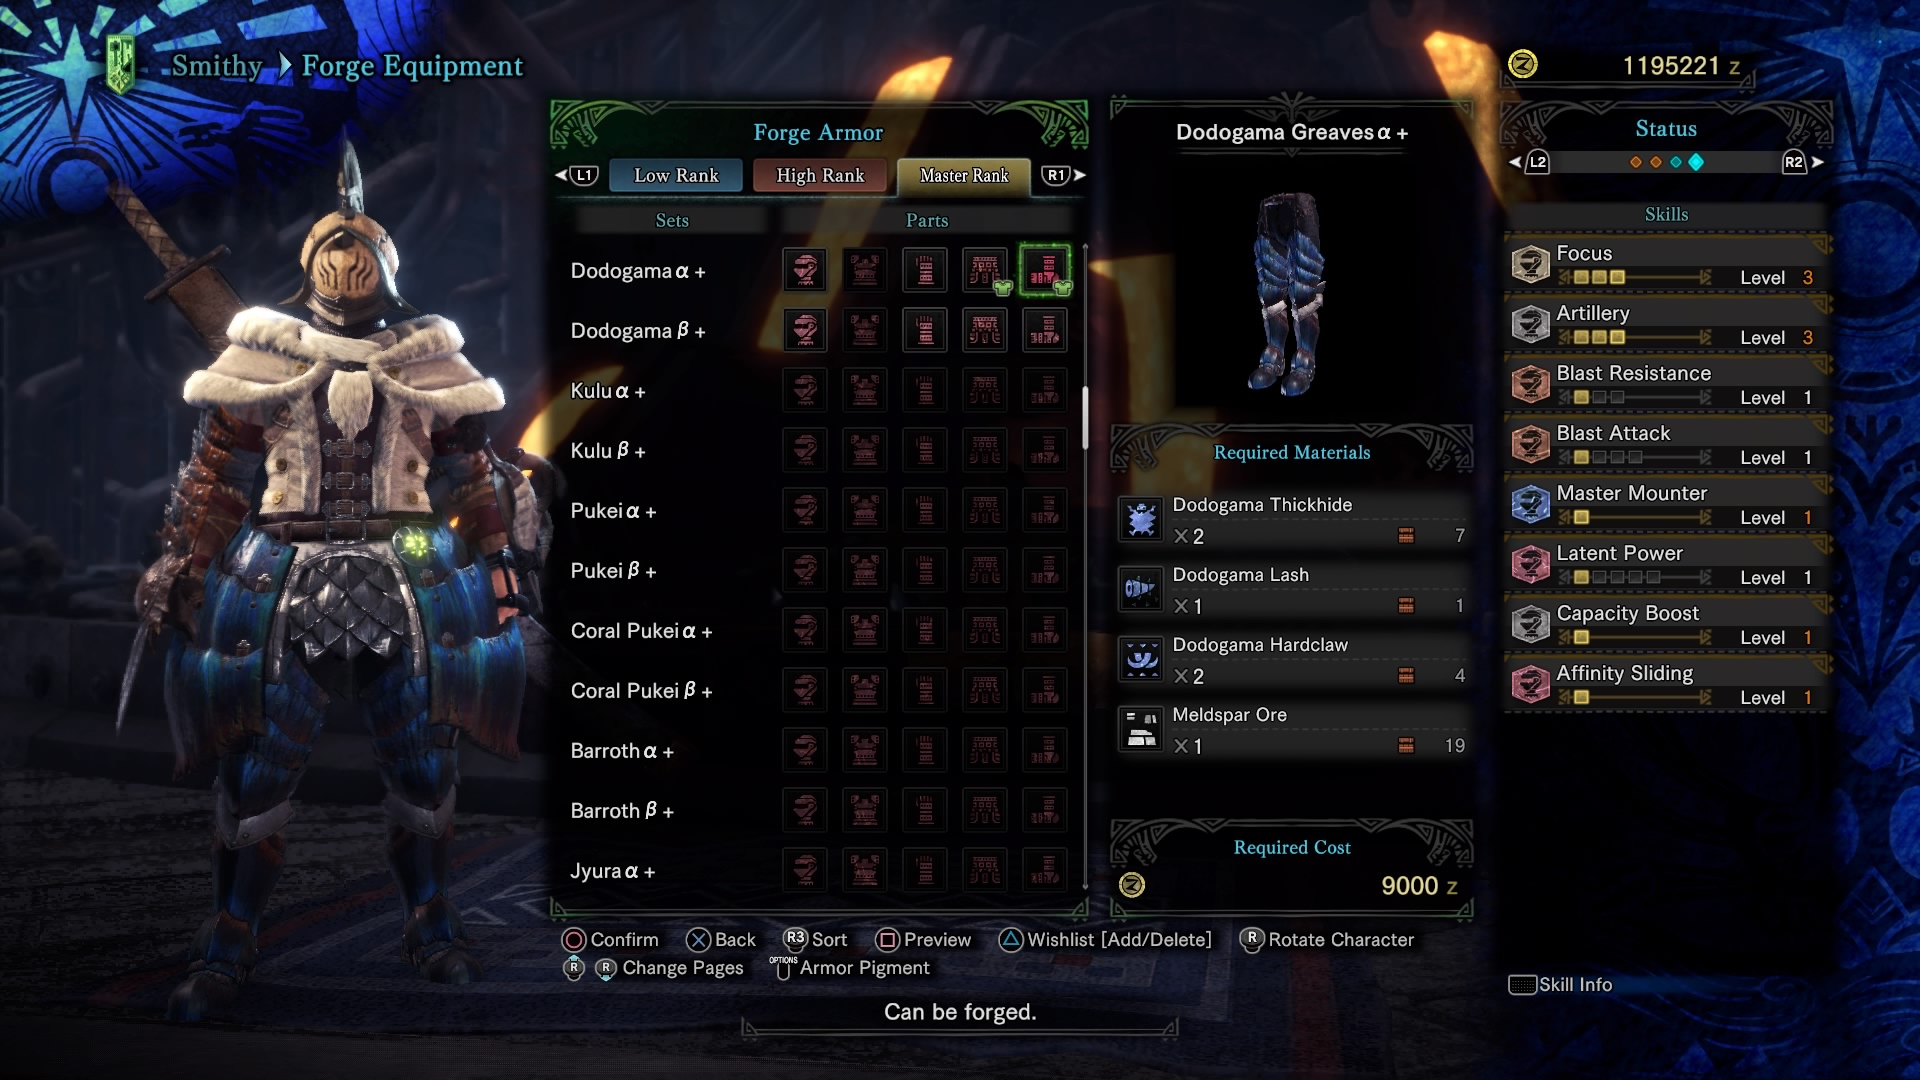 Charge Blade - Best Loadout Build & Skill Guide - MHW: ICEBORNE